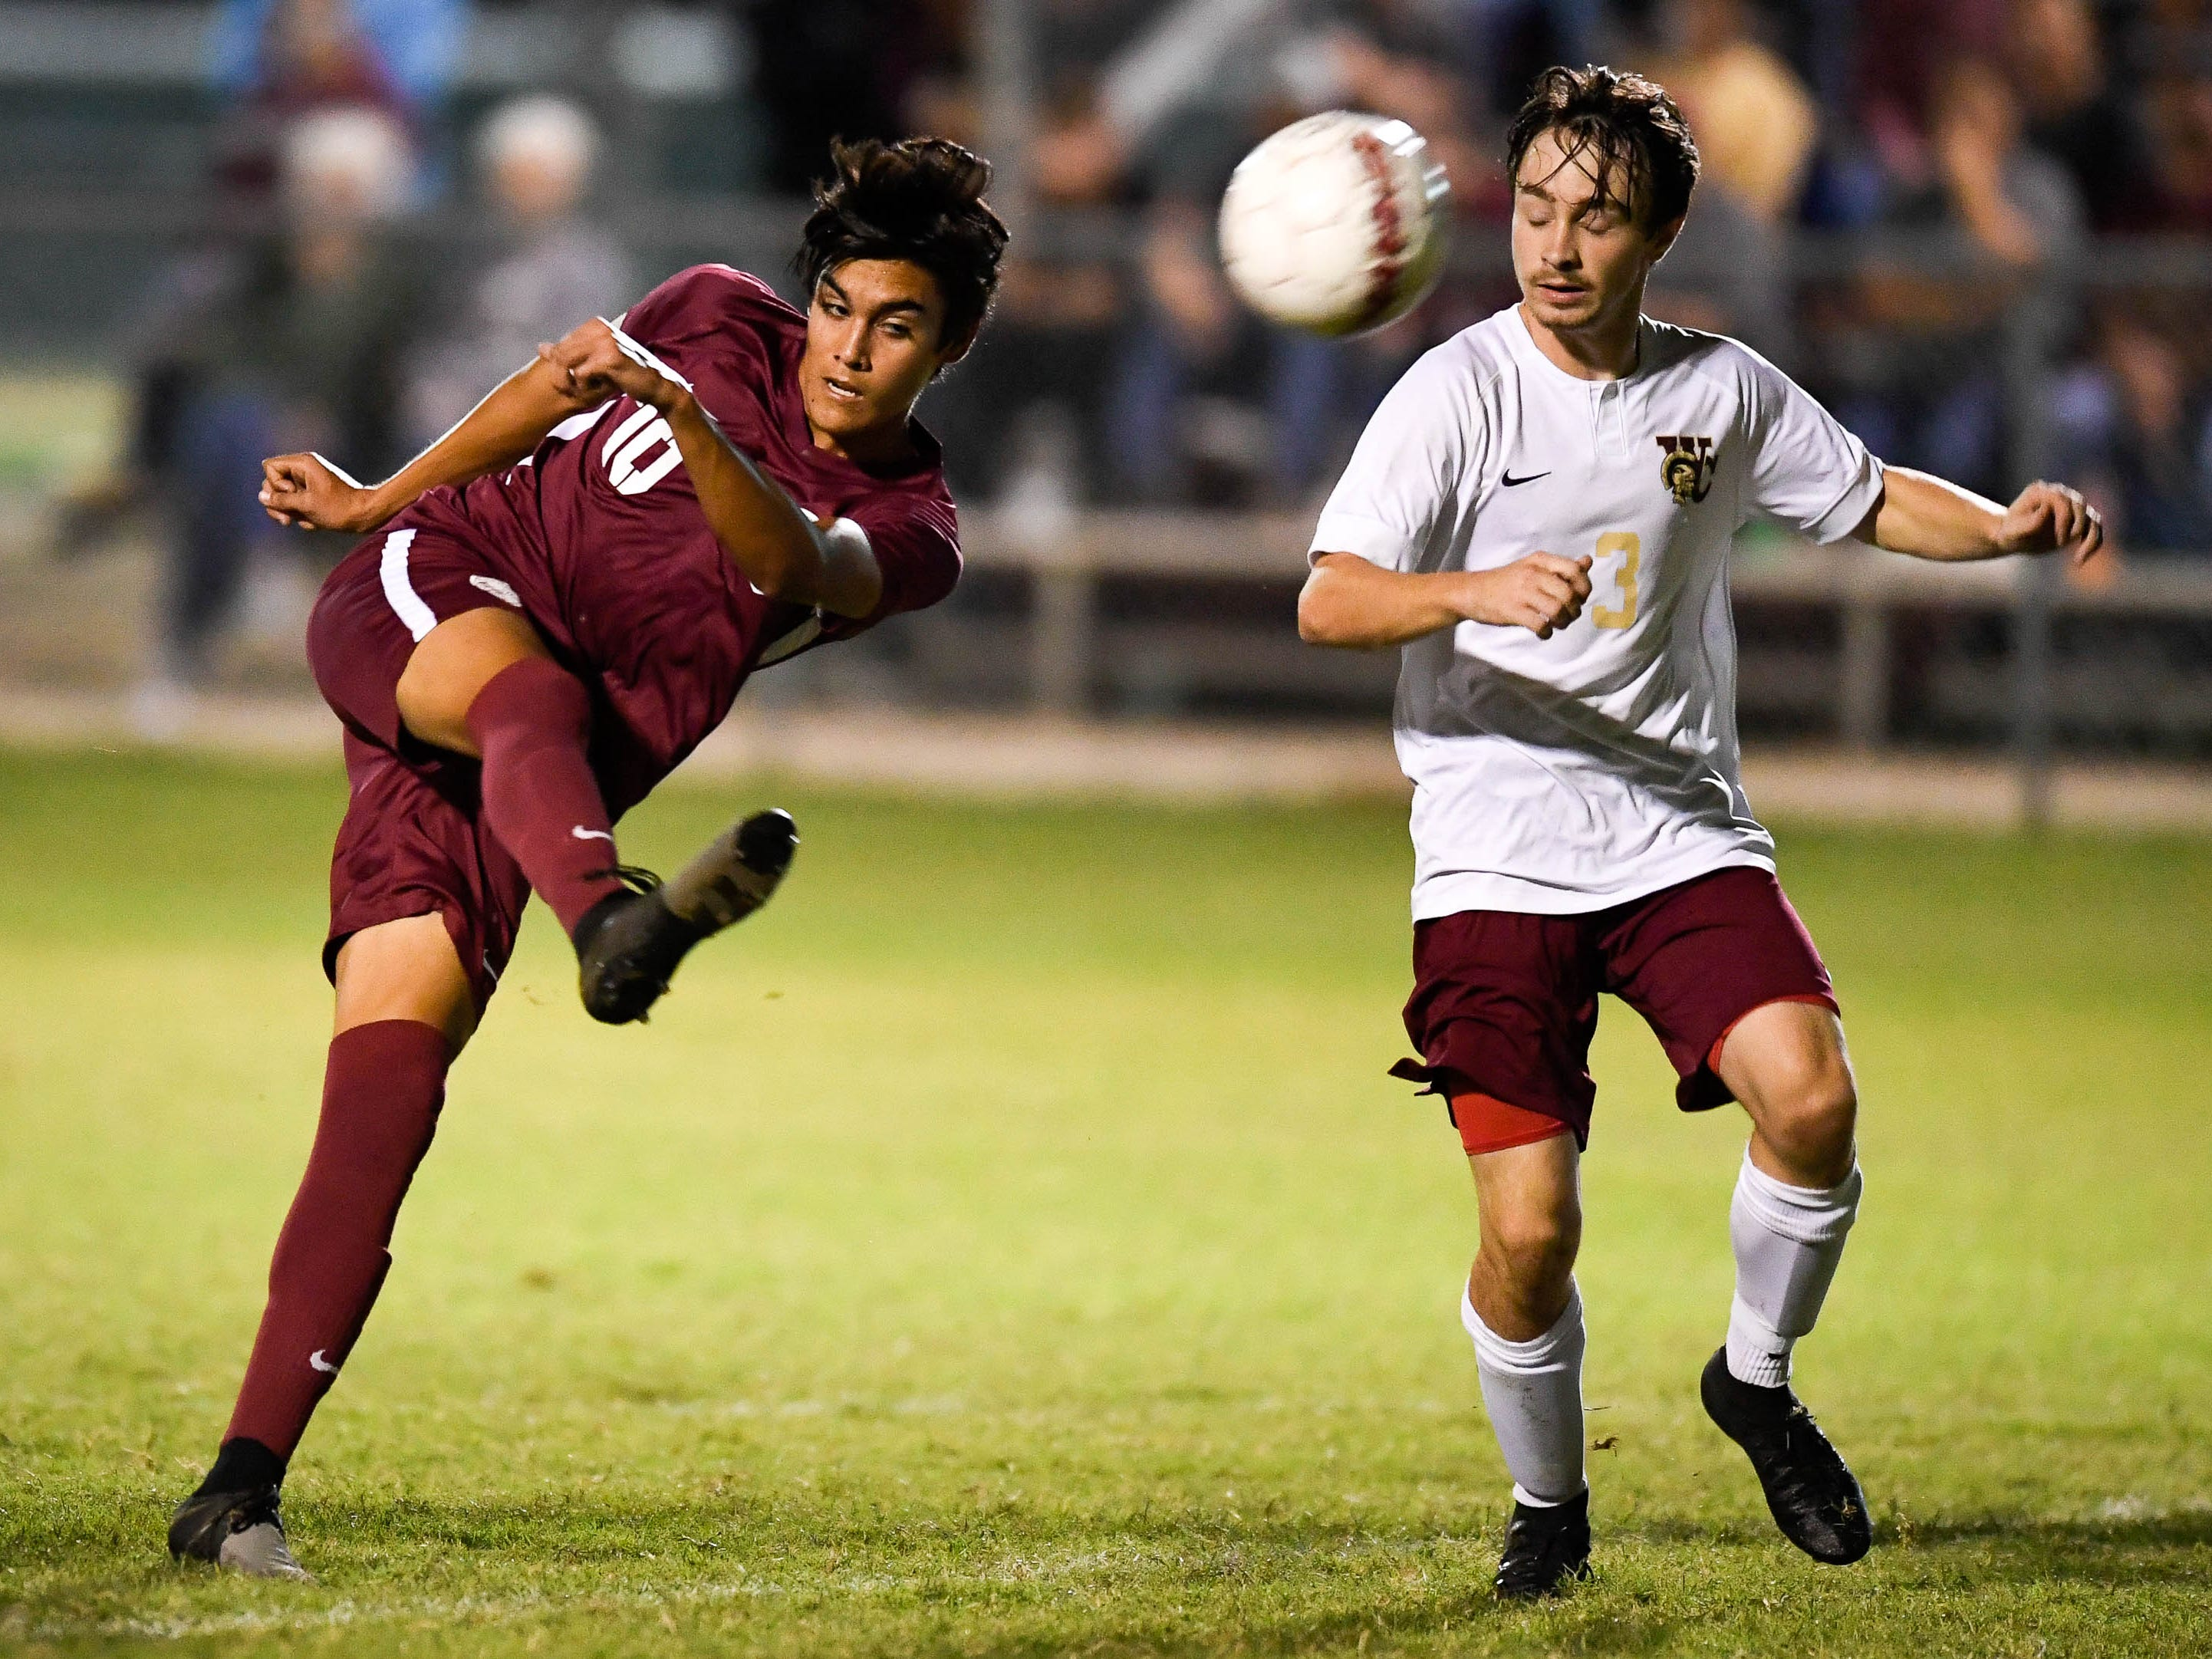 Henderson County's David Gonzalez (10) with a goal kick under defensive pressure from Webster's Drake Newcom (3) as the Henderson County Colonels play the Webster County Trojans in the Sixth District Soccer Tournament at Colonel Field Wednesday, October 10, 2018.